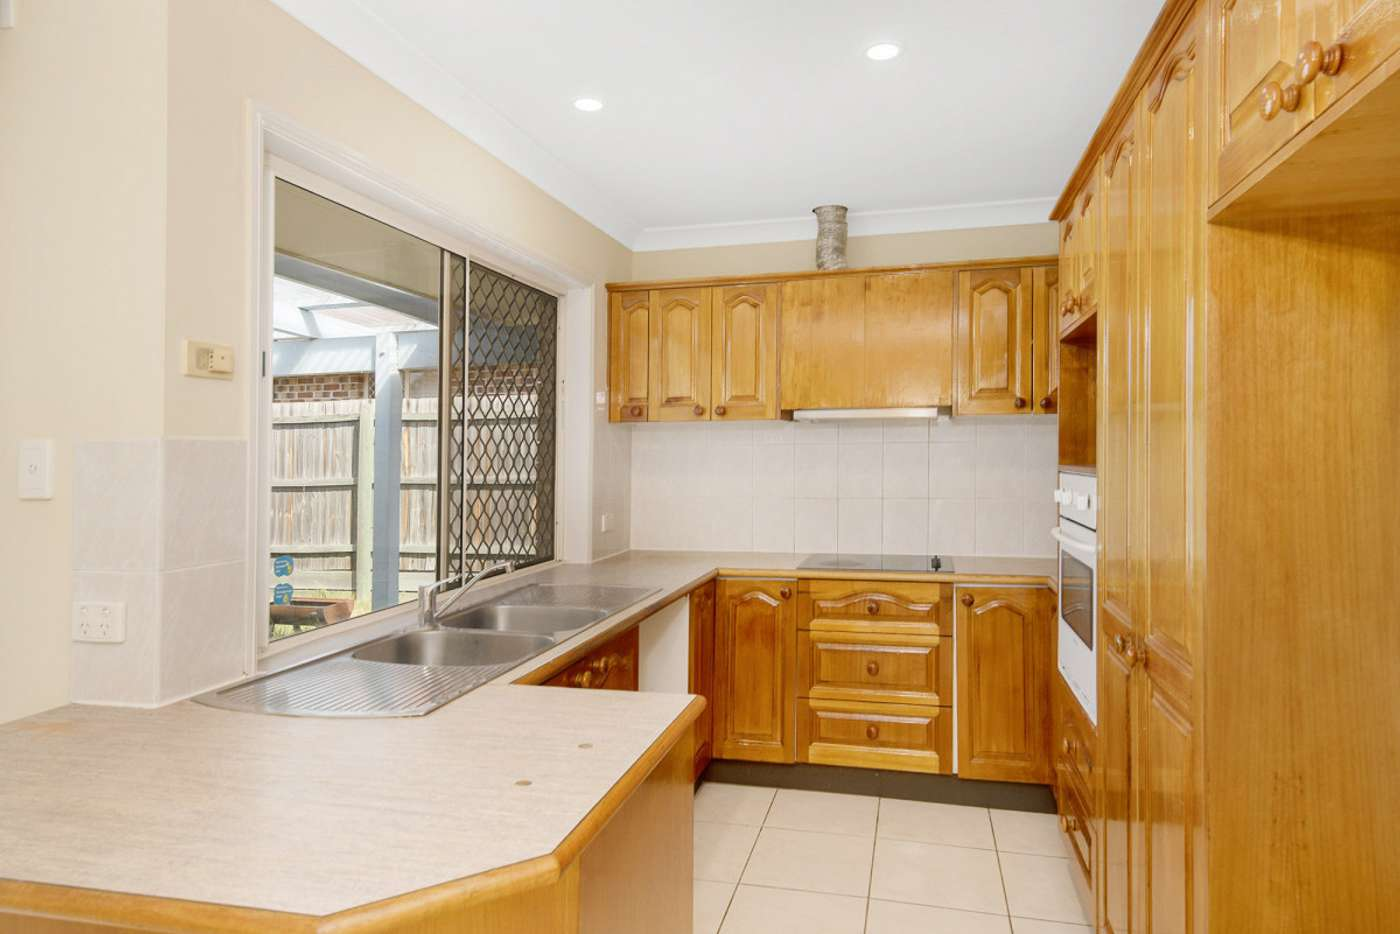 Seventh view of Homely house listing, 6 Allarton Street, Coopers Plains QLD 4108